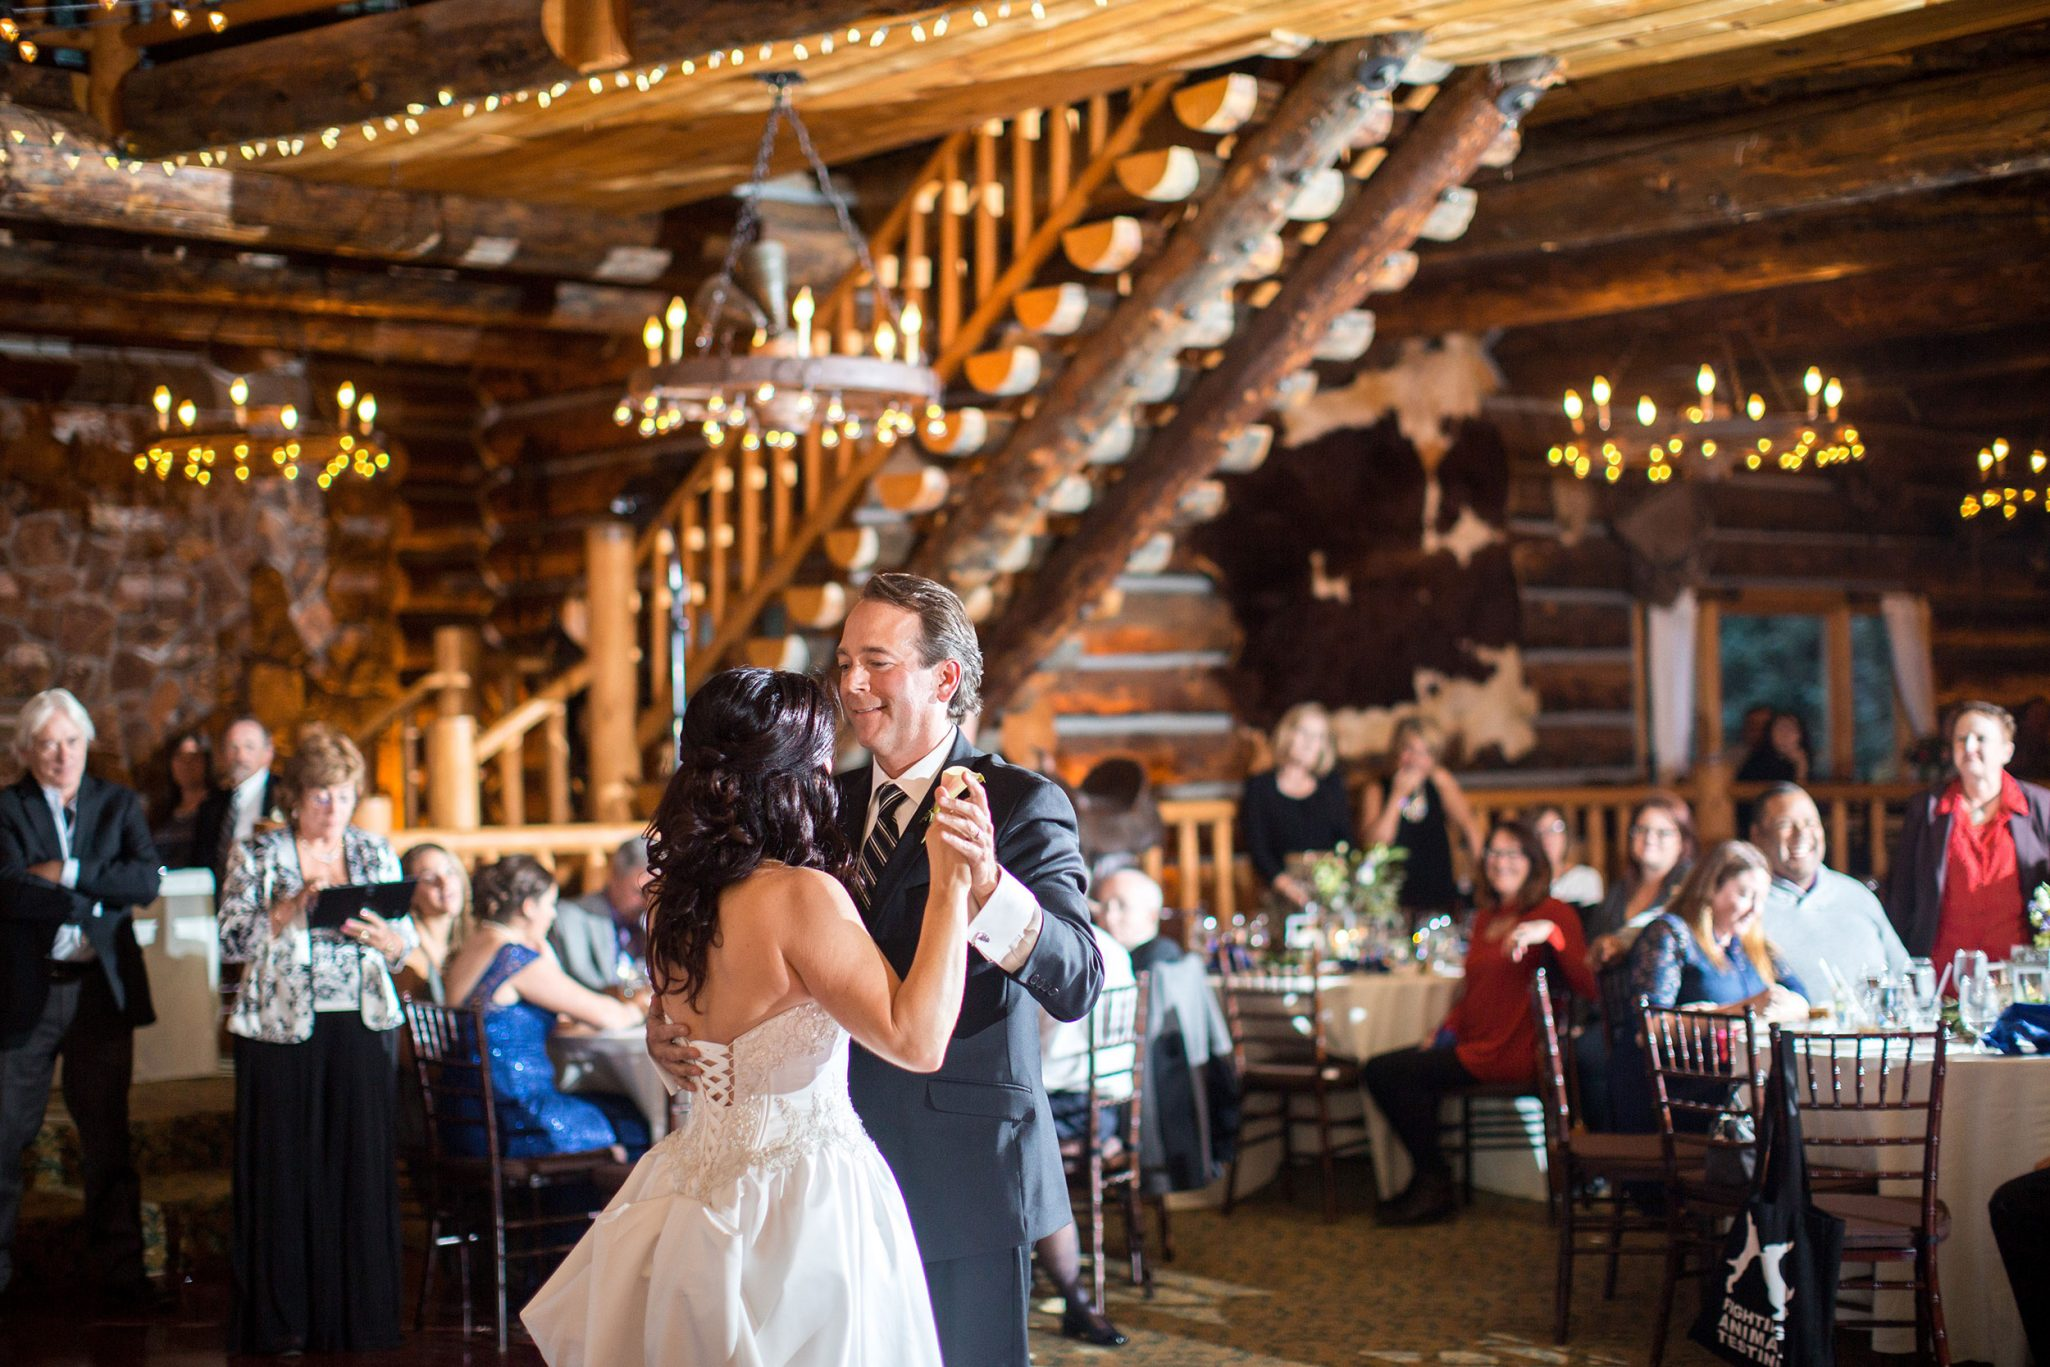 Reception dance | A Fall Aspen Wedding at T Lazy 7 Ranch, Colorado